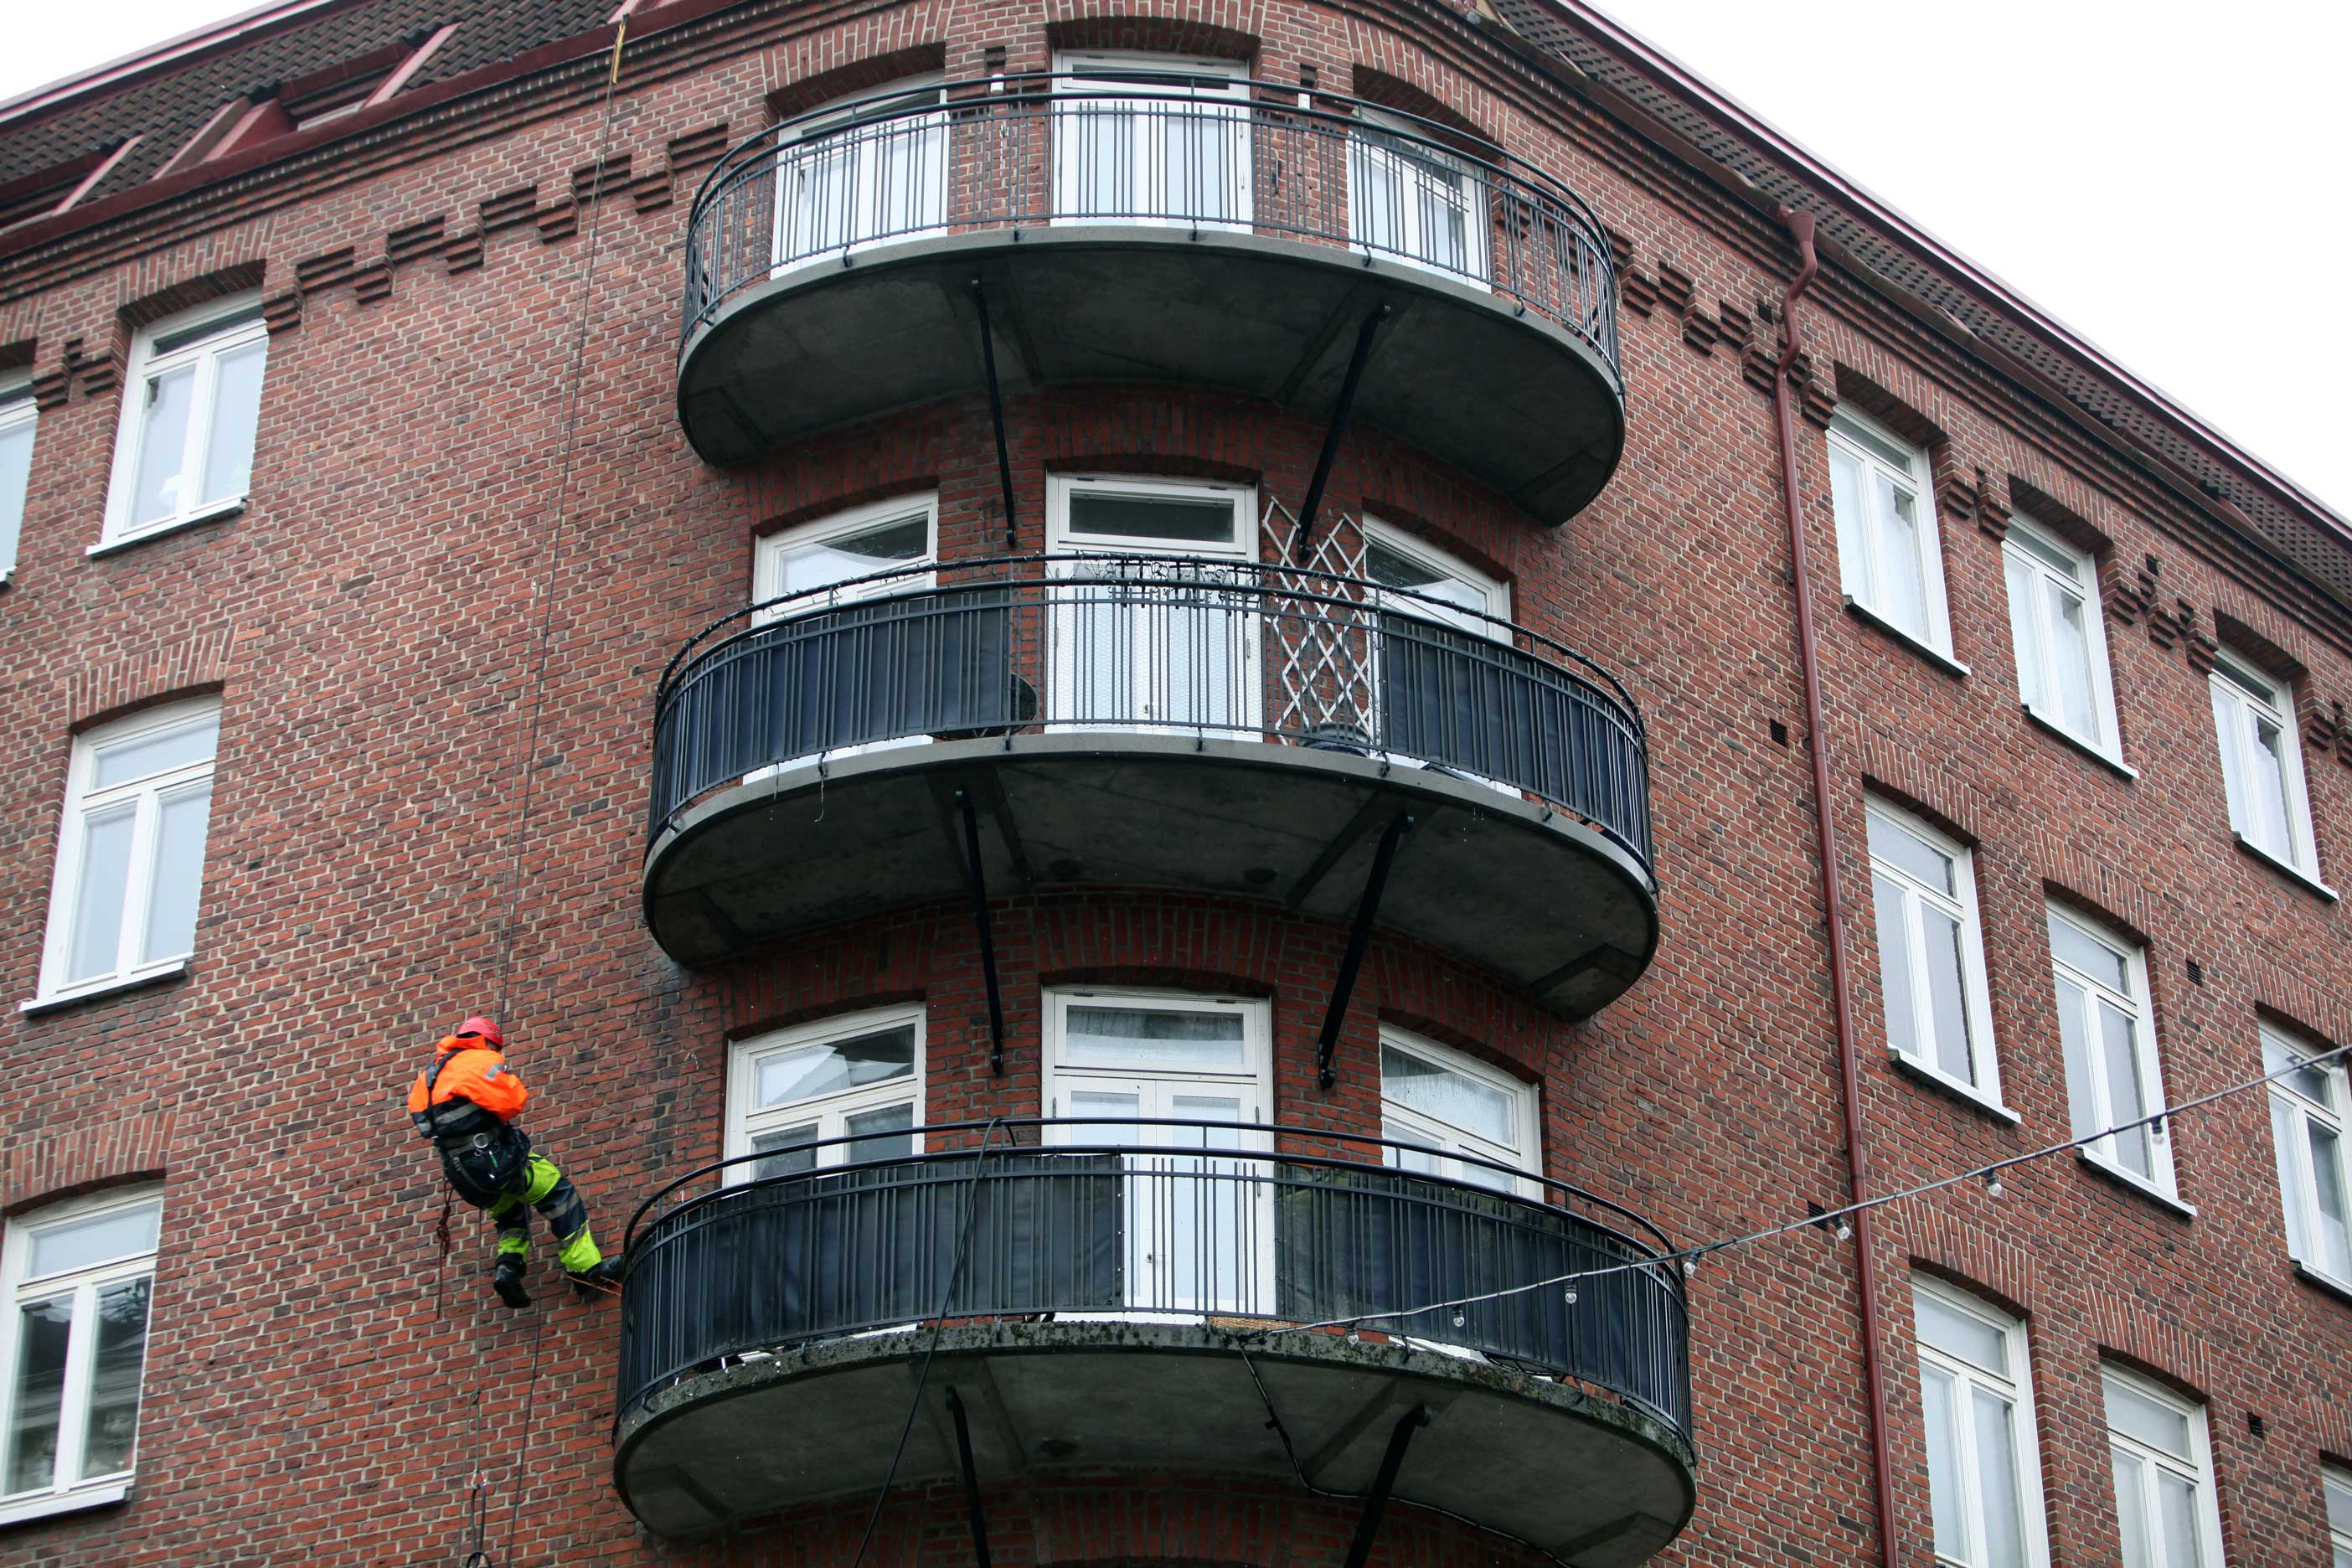 Rena betongkanter med ropeaccess